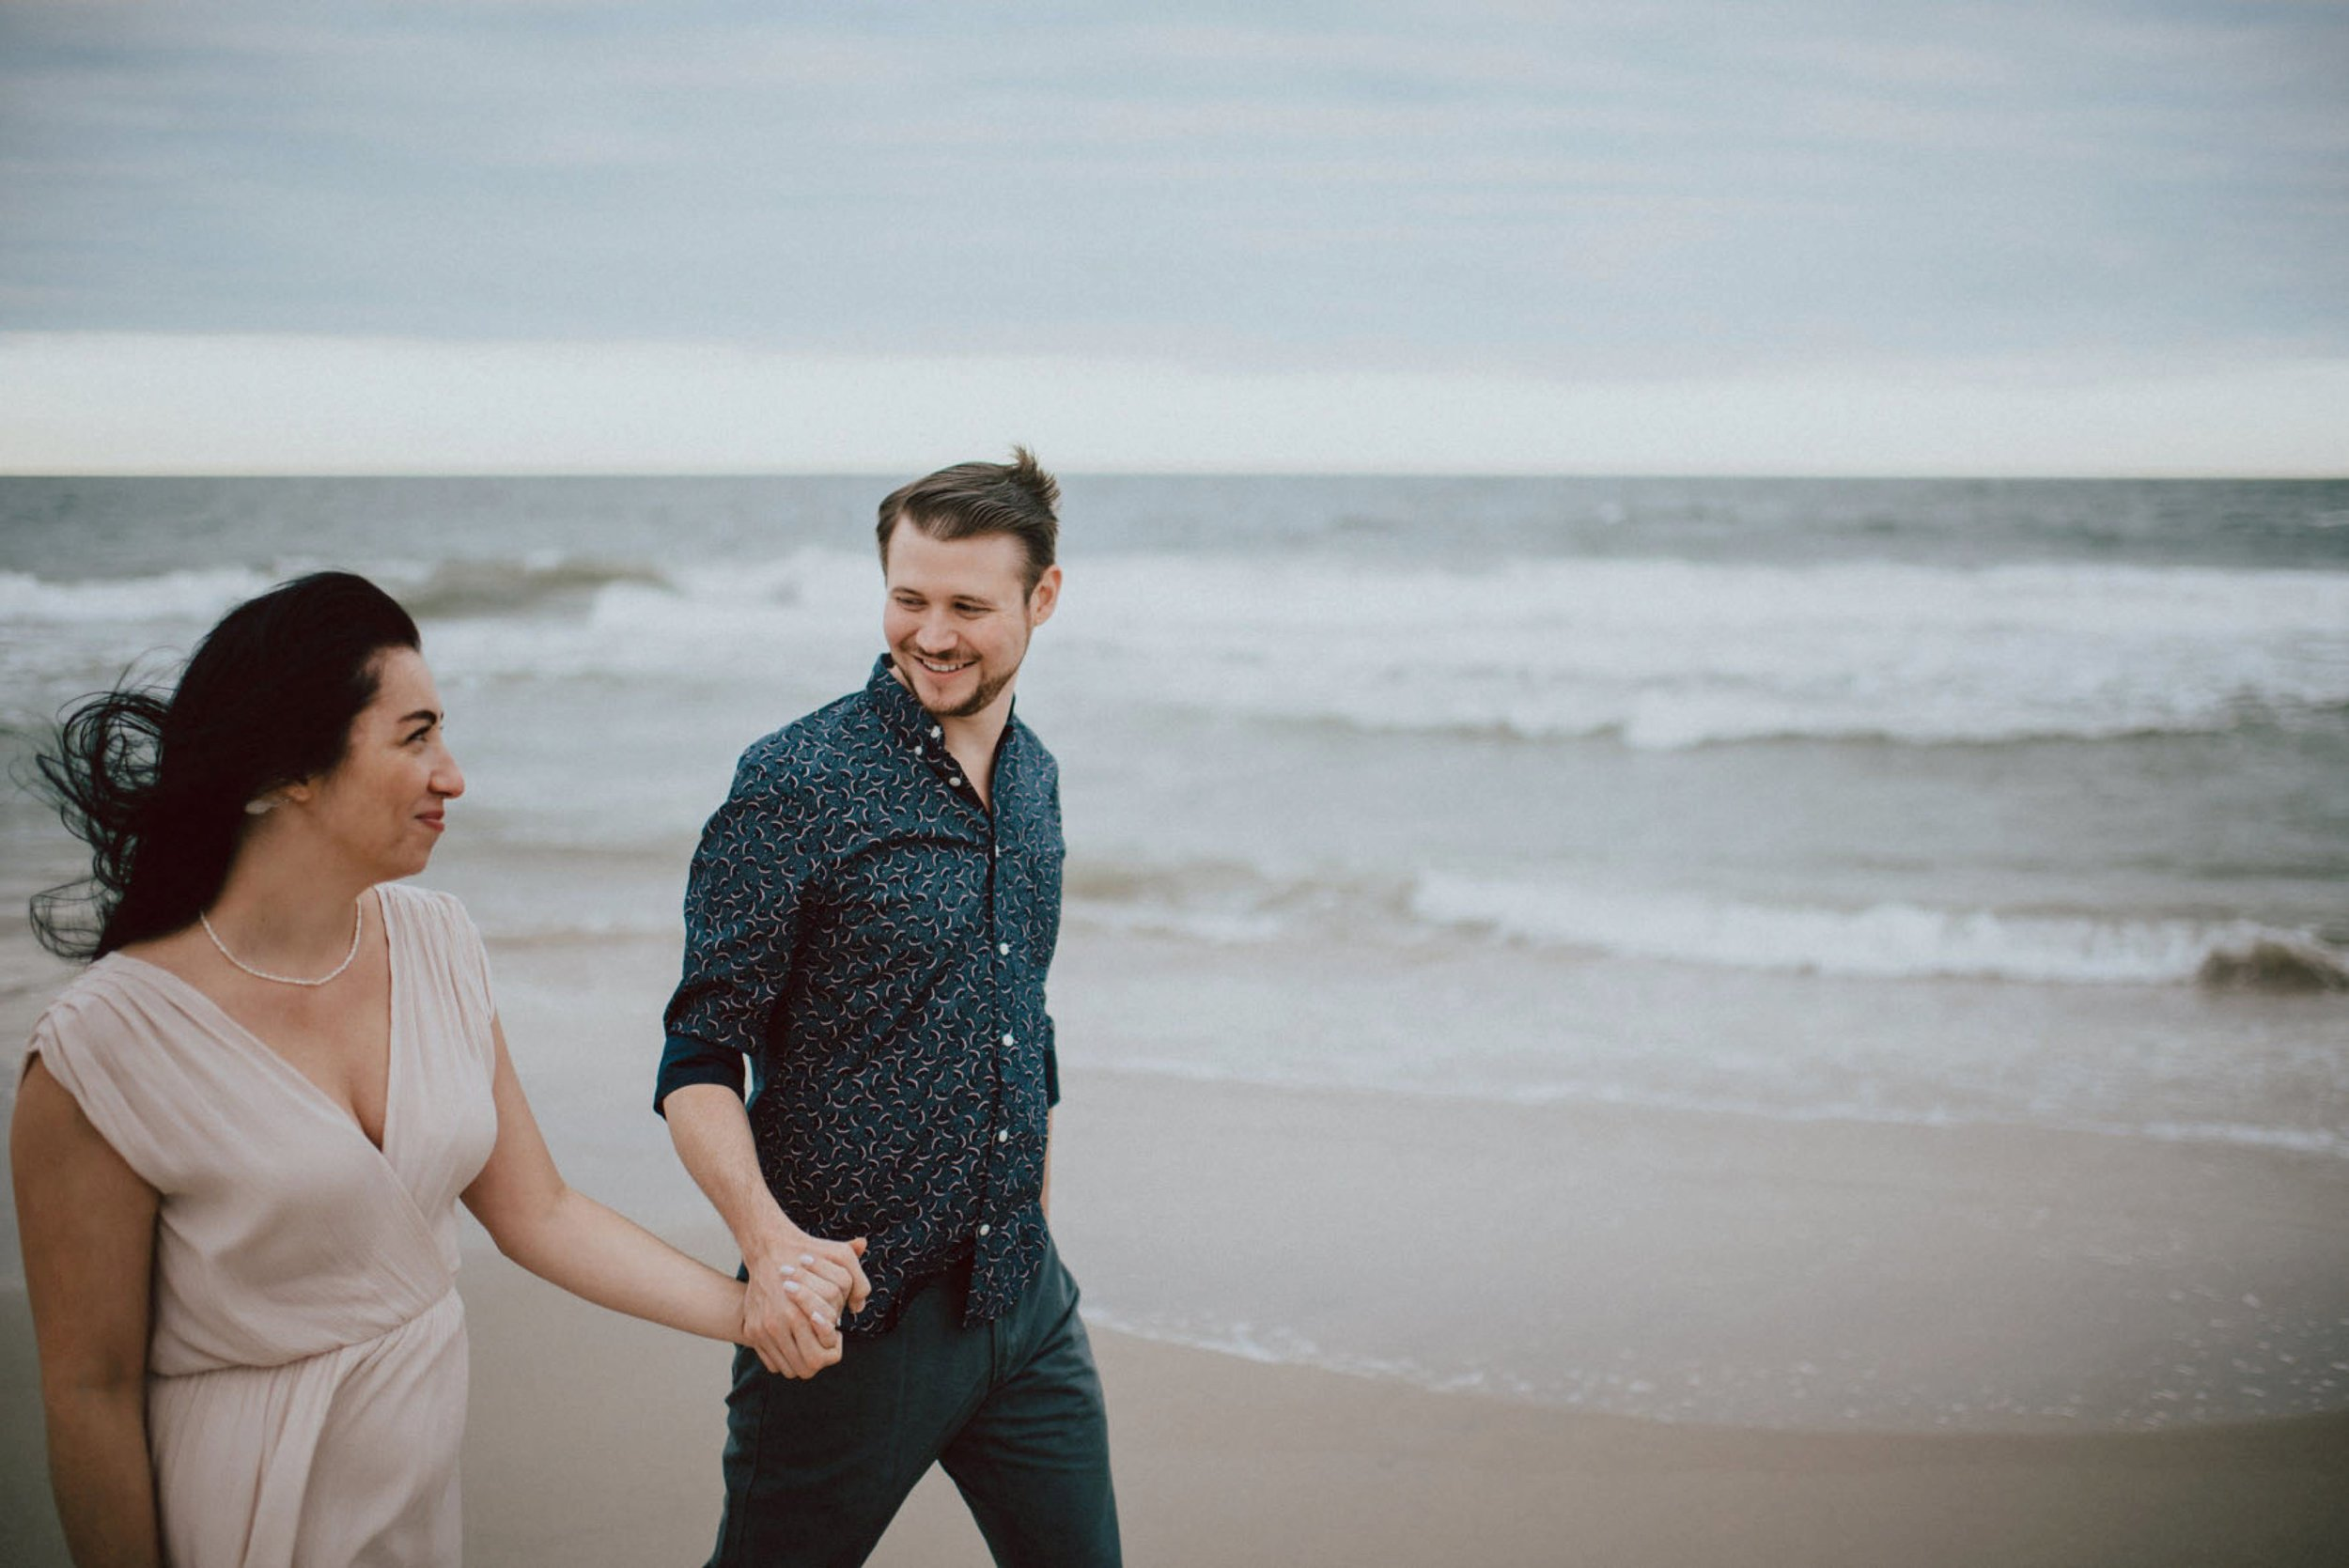 Long-beach-island-engagement-session-21.jpg